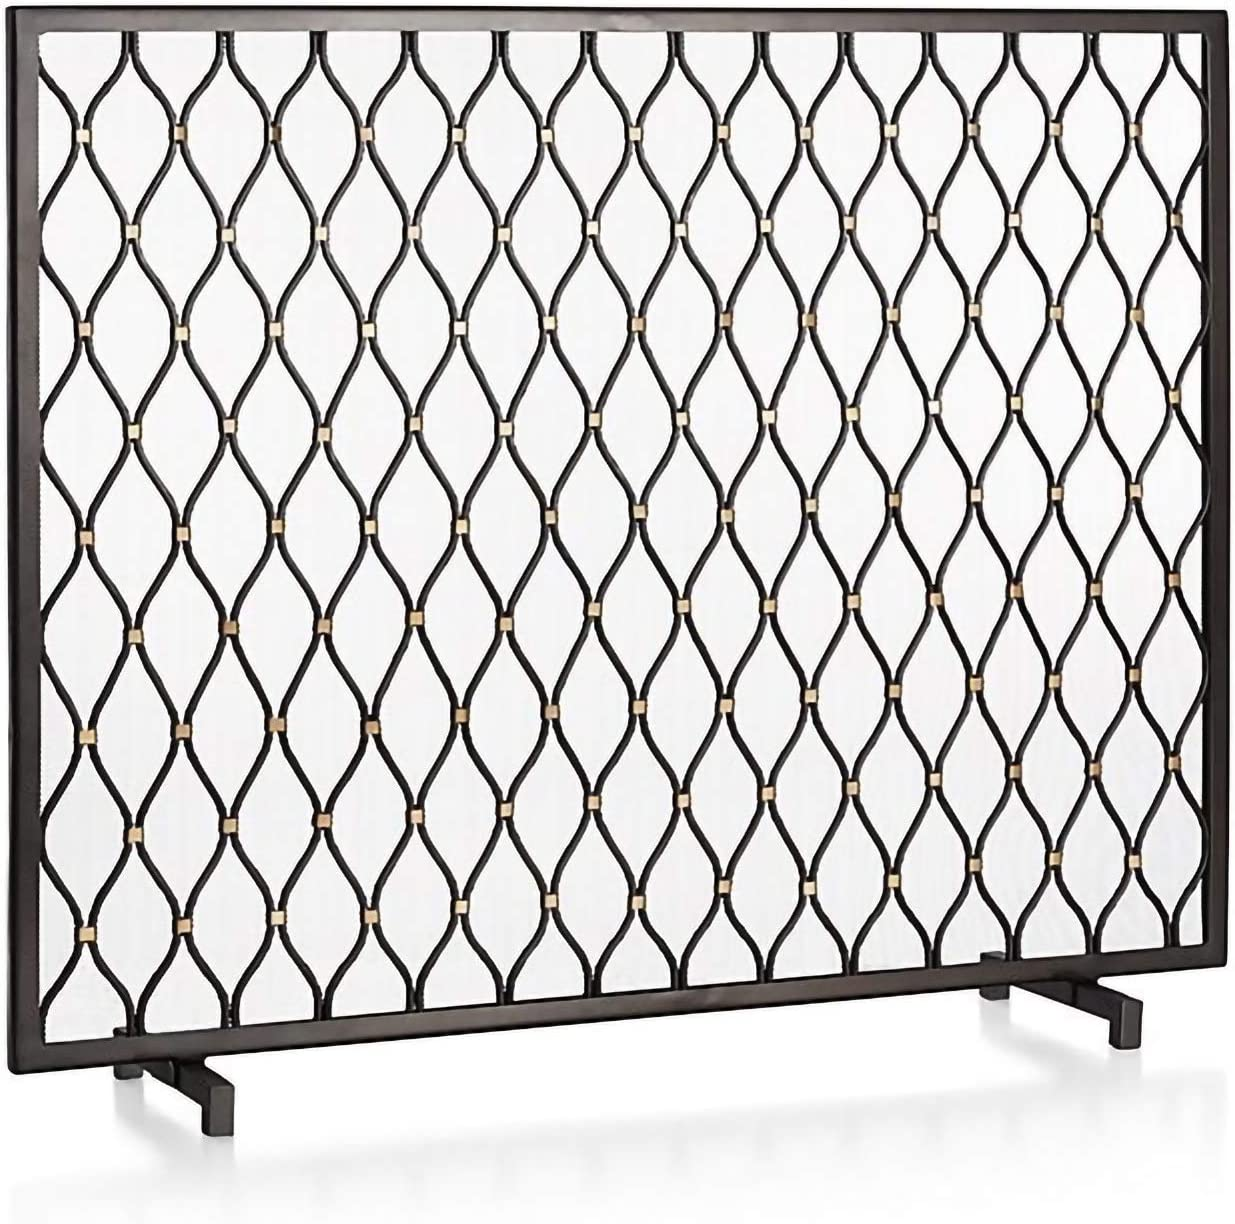 YYLL Max 46% OFF Wrought OFFicial mail order Iron Fireplace Panels Metal Fire 30 38.58